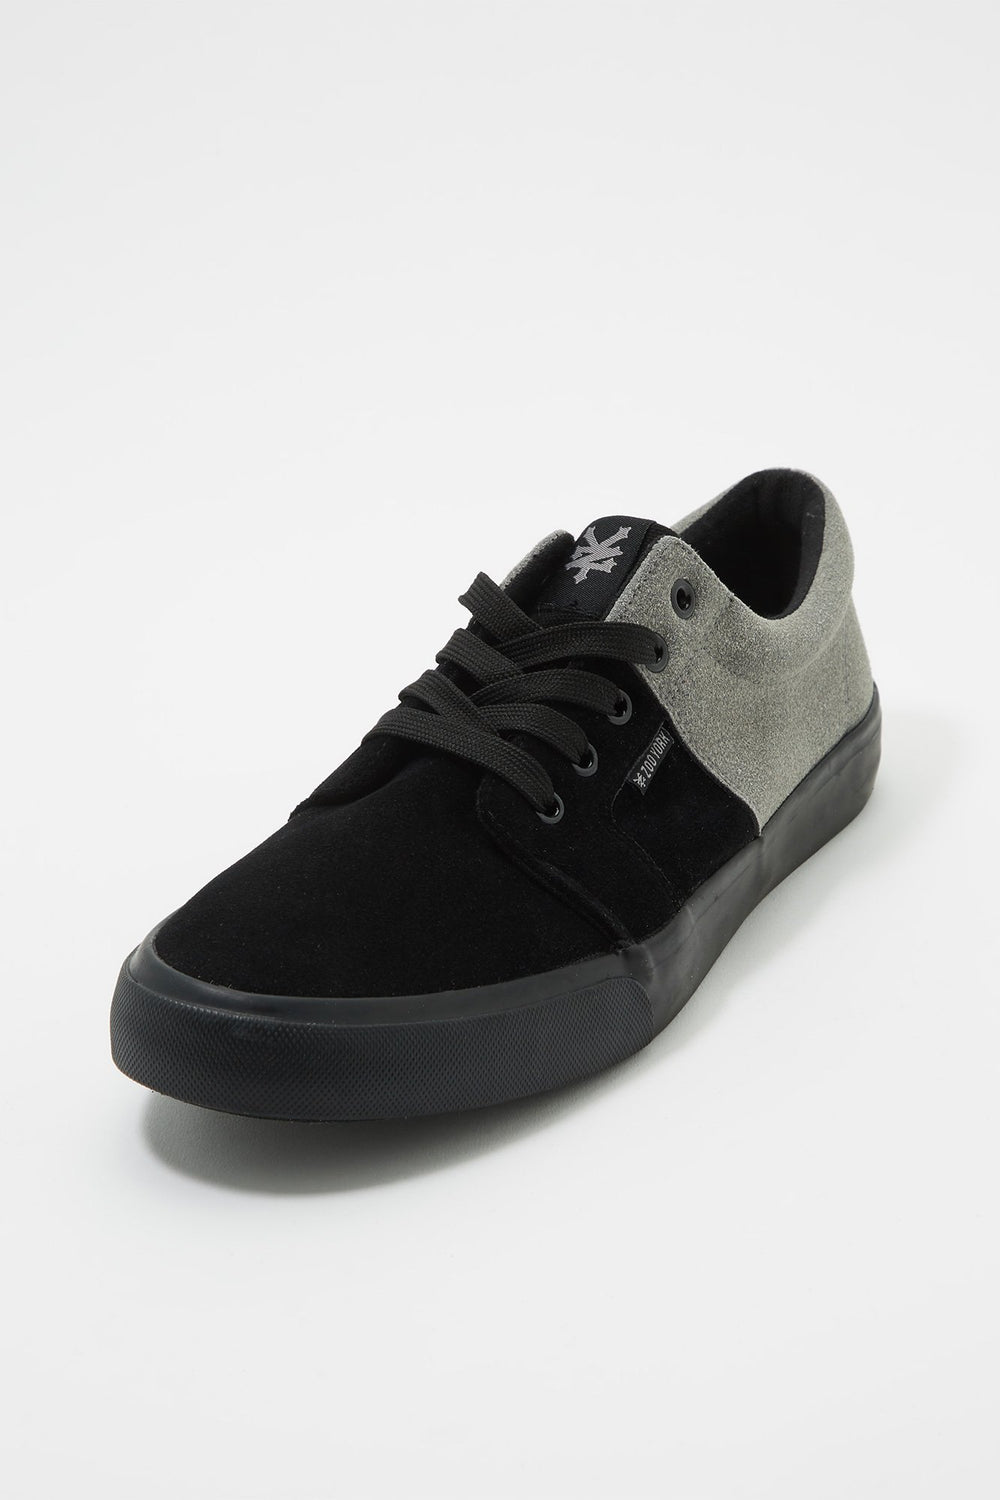 Zoo York Boys All Black Stack Lace-Up Canvas Shoes Heather Grey